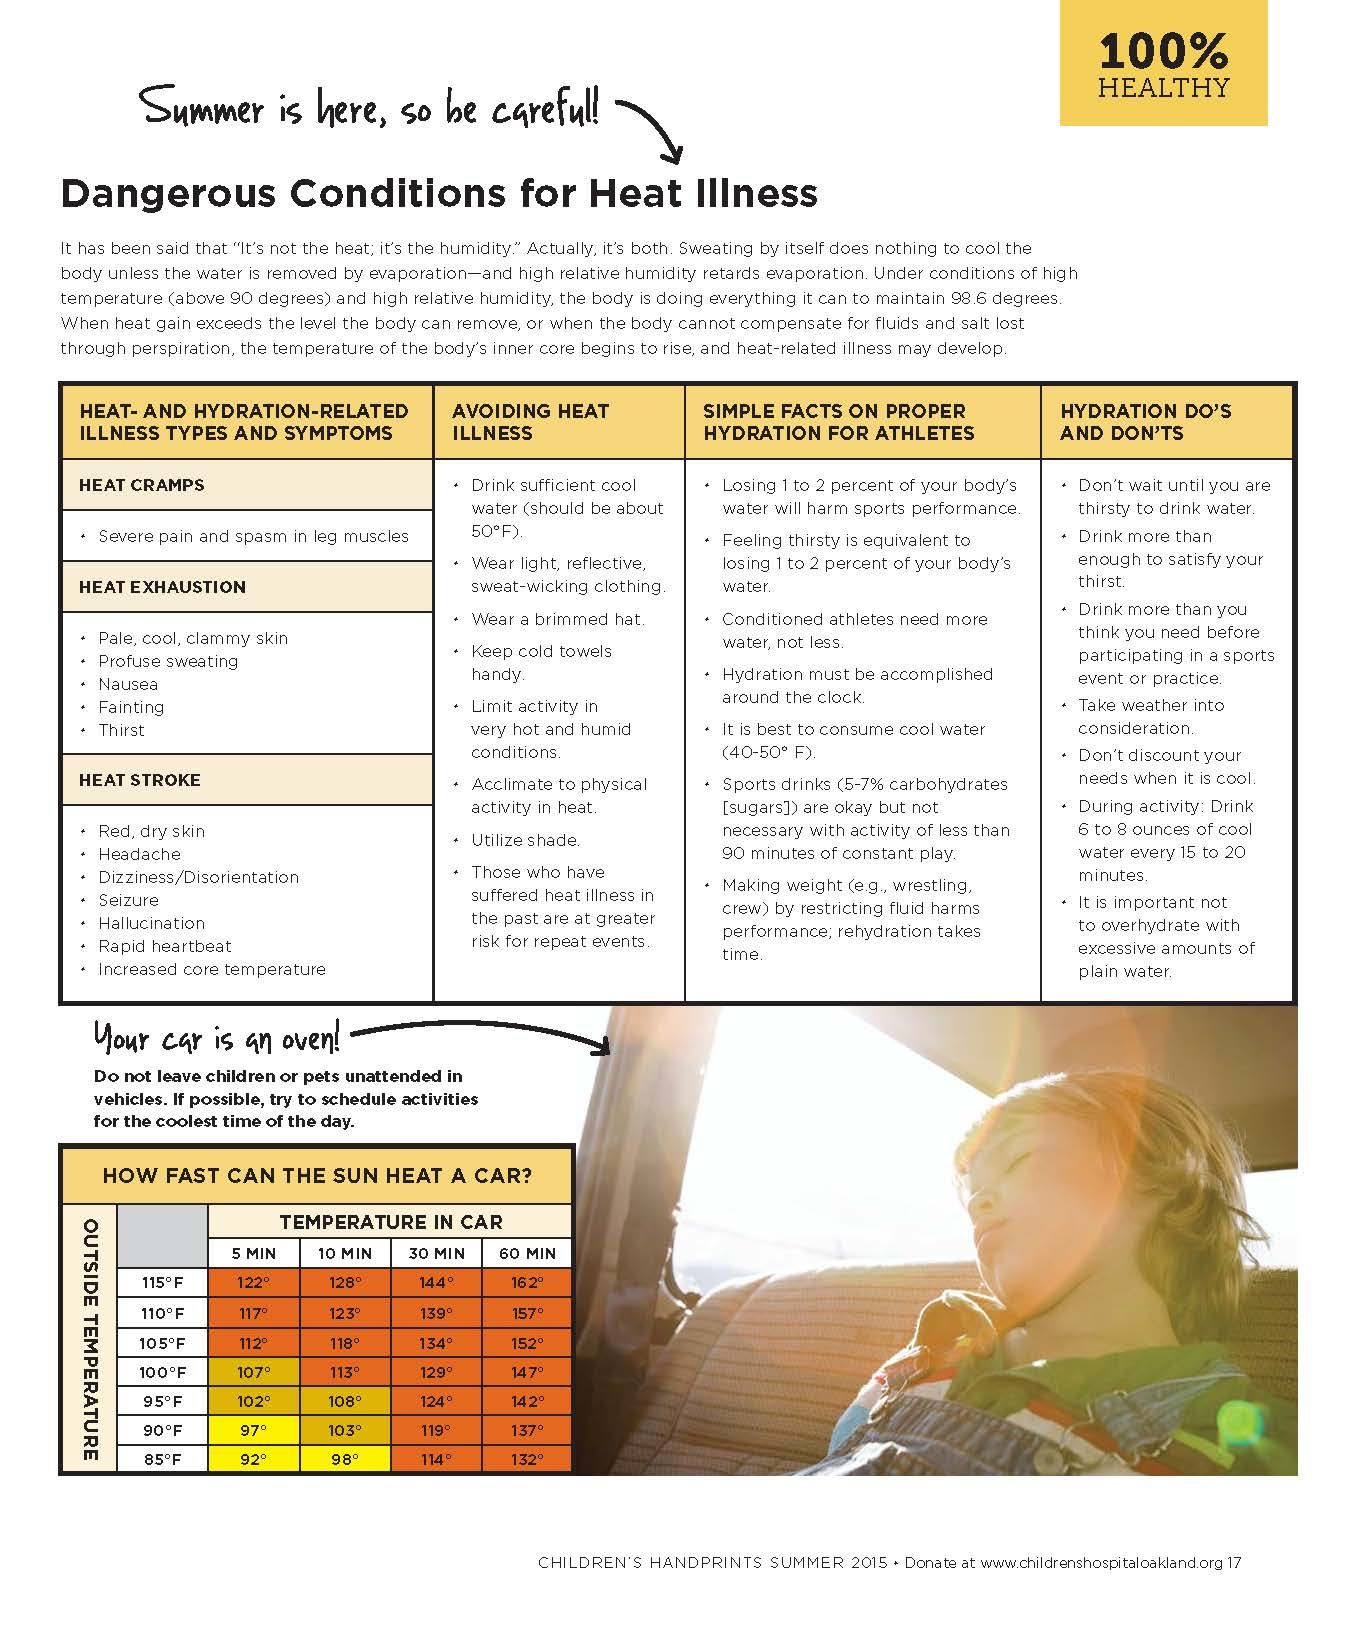 Your Home Heating Safety Tips: Heat Safety Tips. Prevent Heat-related Illness. Hot